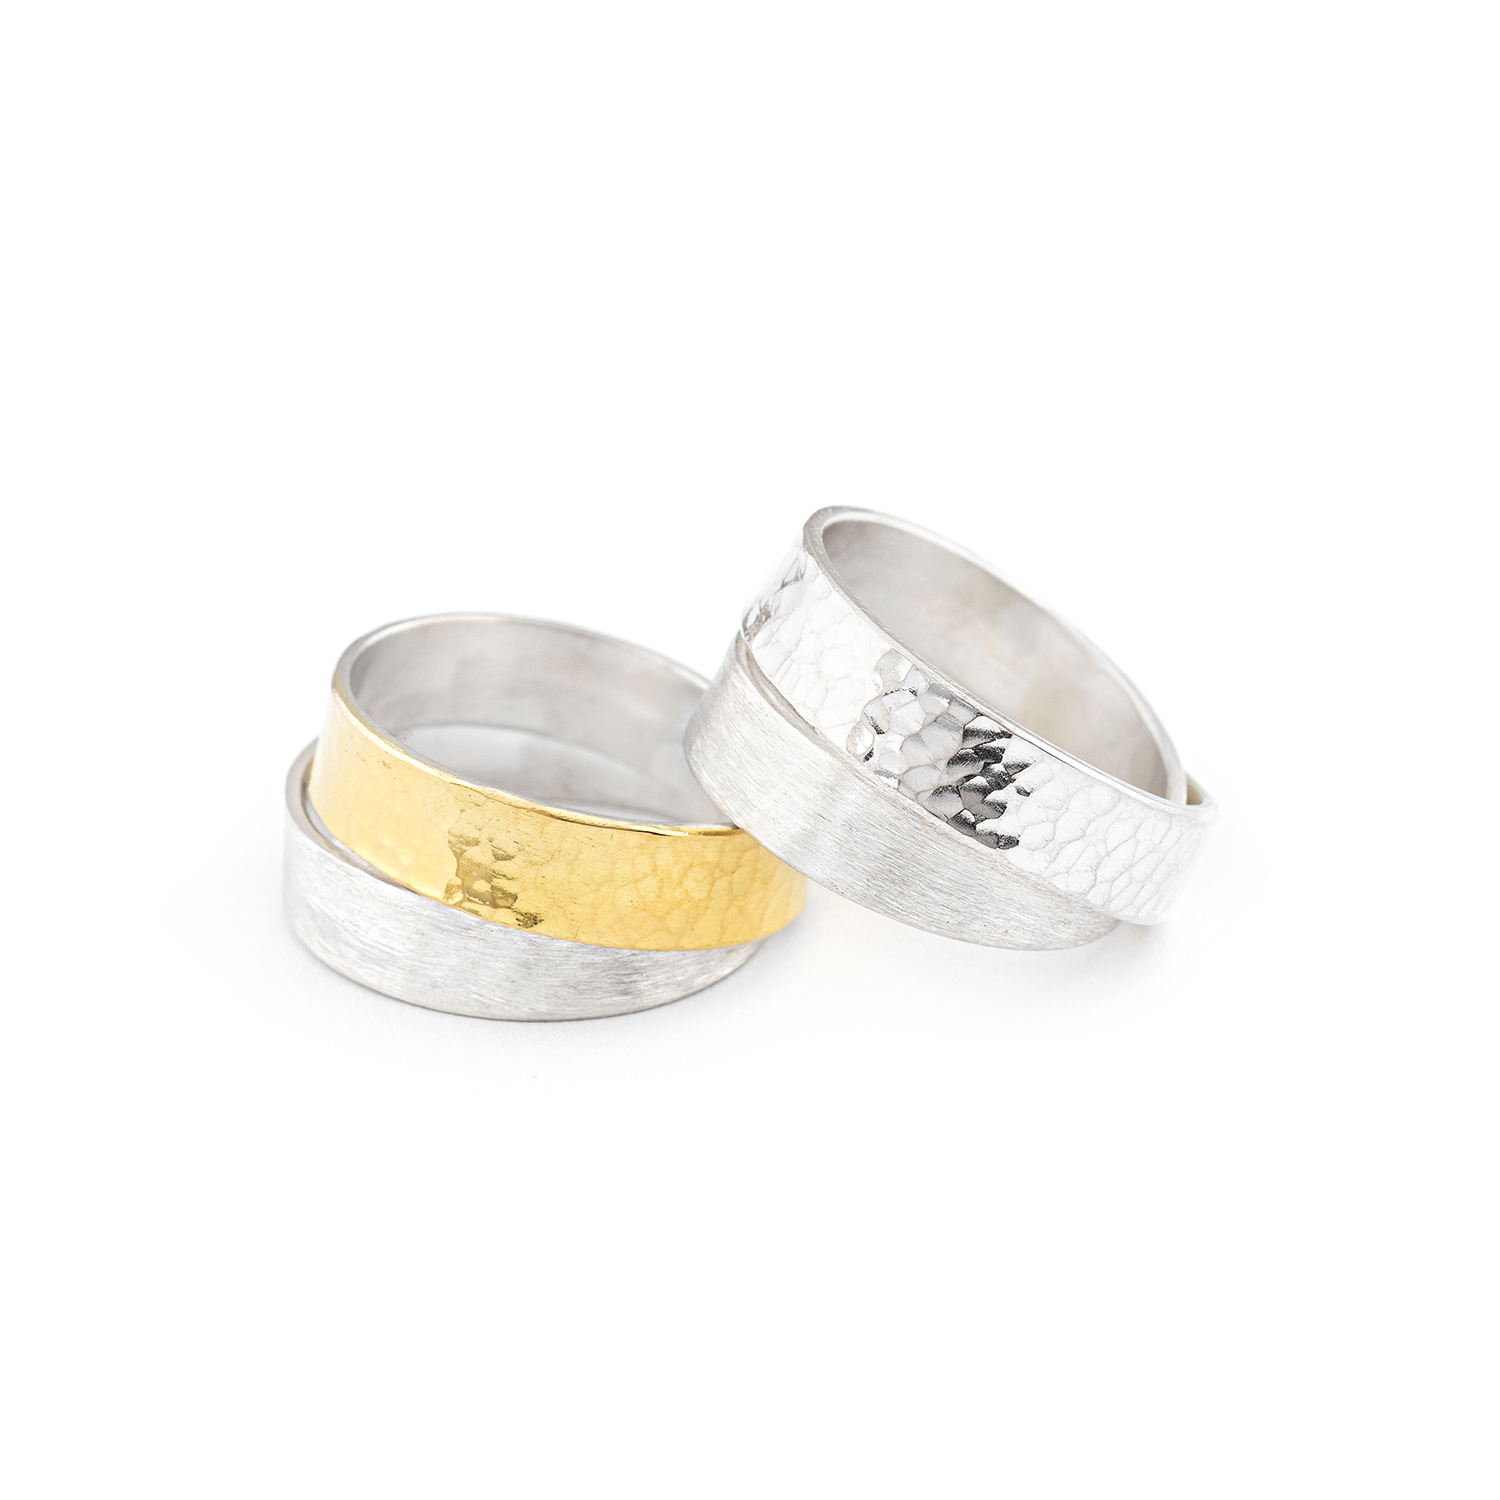 The INFINI rings of the DOTS collection, either entirely in silver or silver/22 cts gold